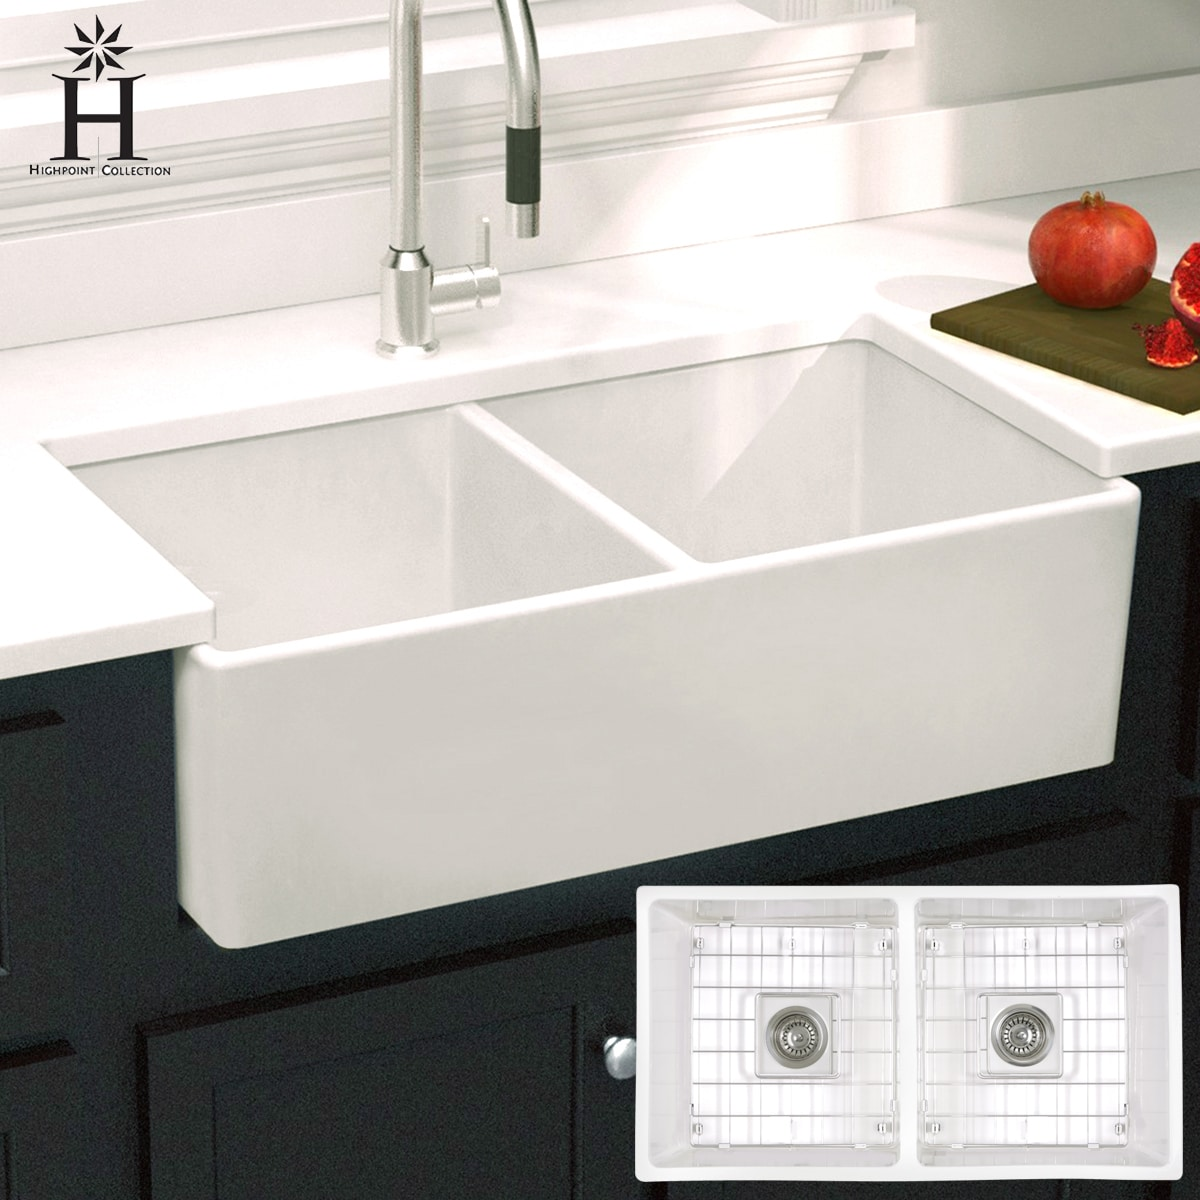 Highpoint Collection Double Bowl Fireclay Farmhouse Sink 33 X 18 10 Free Shipping Today 8408348